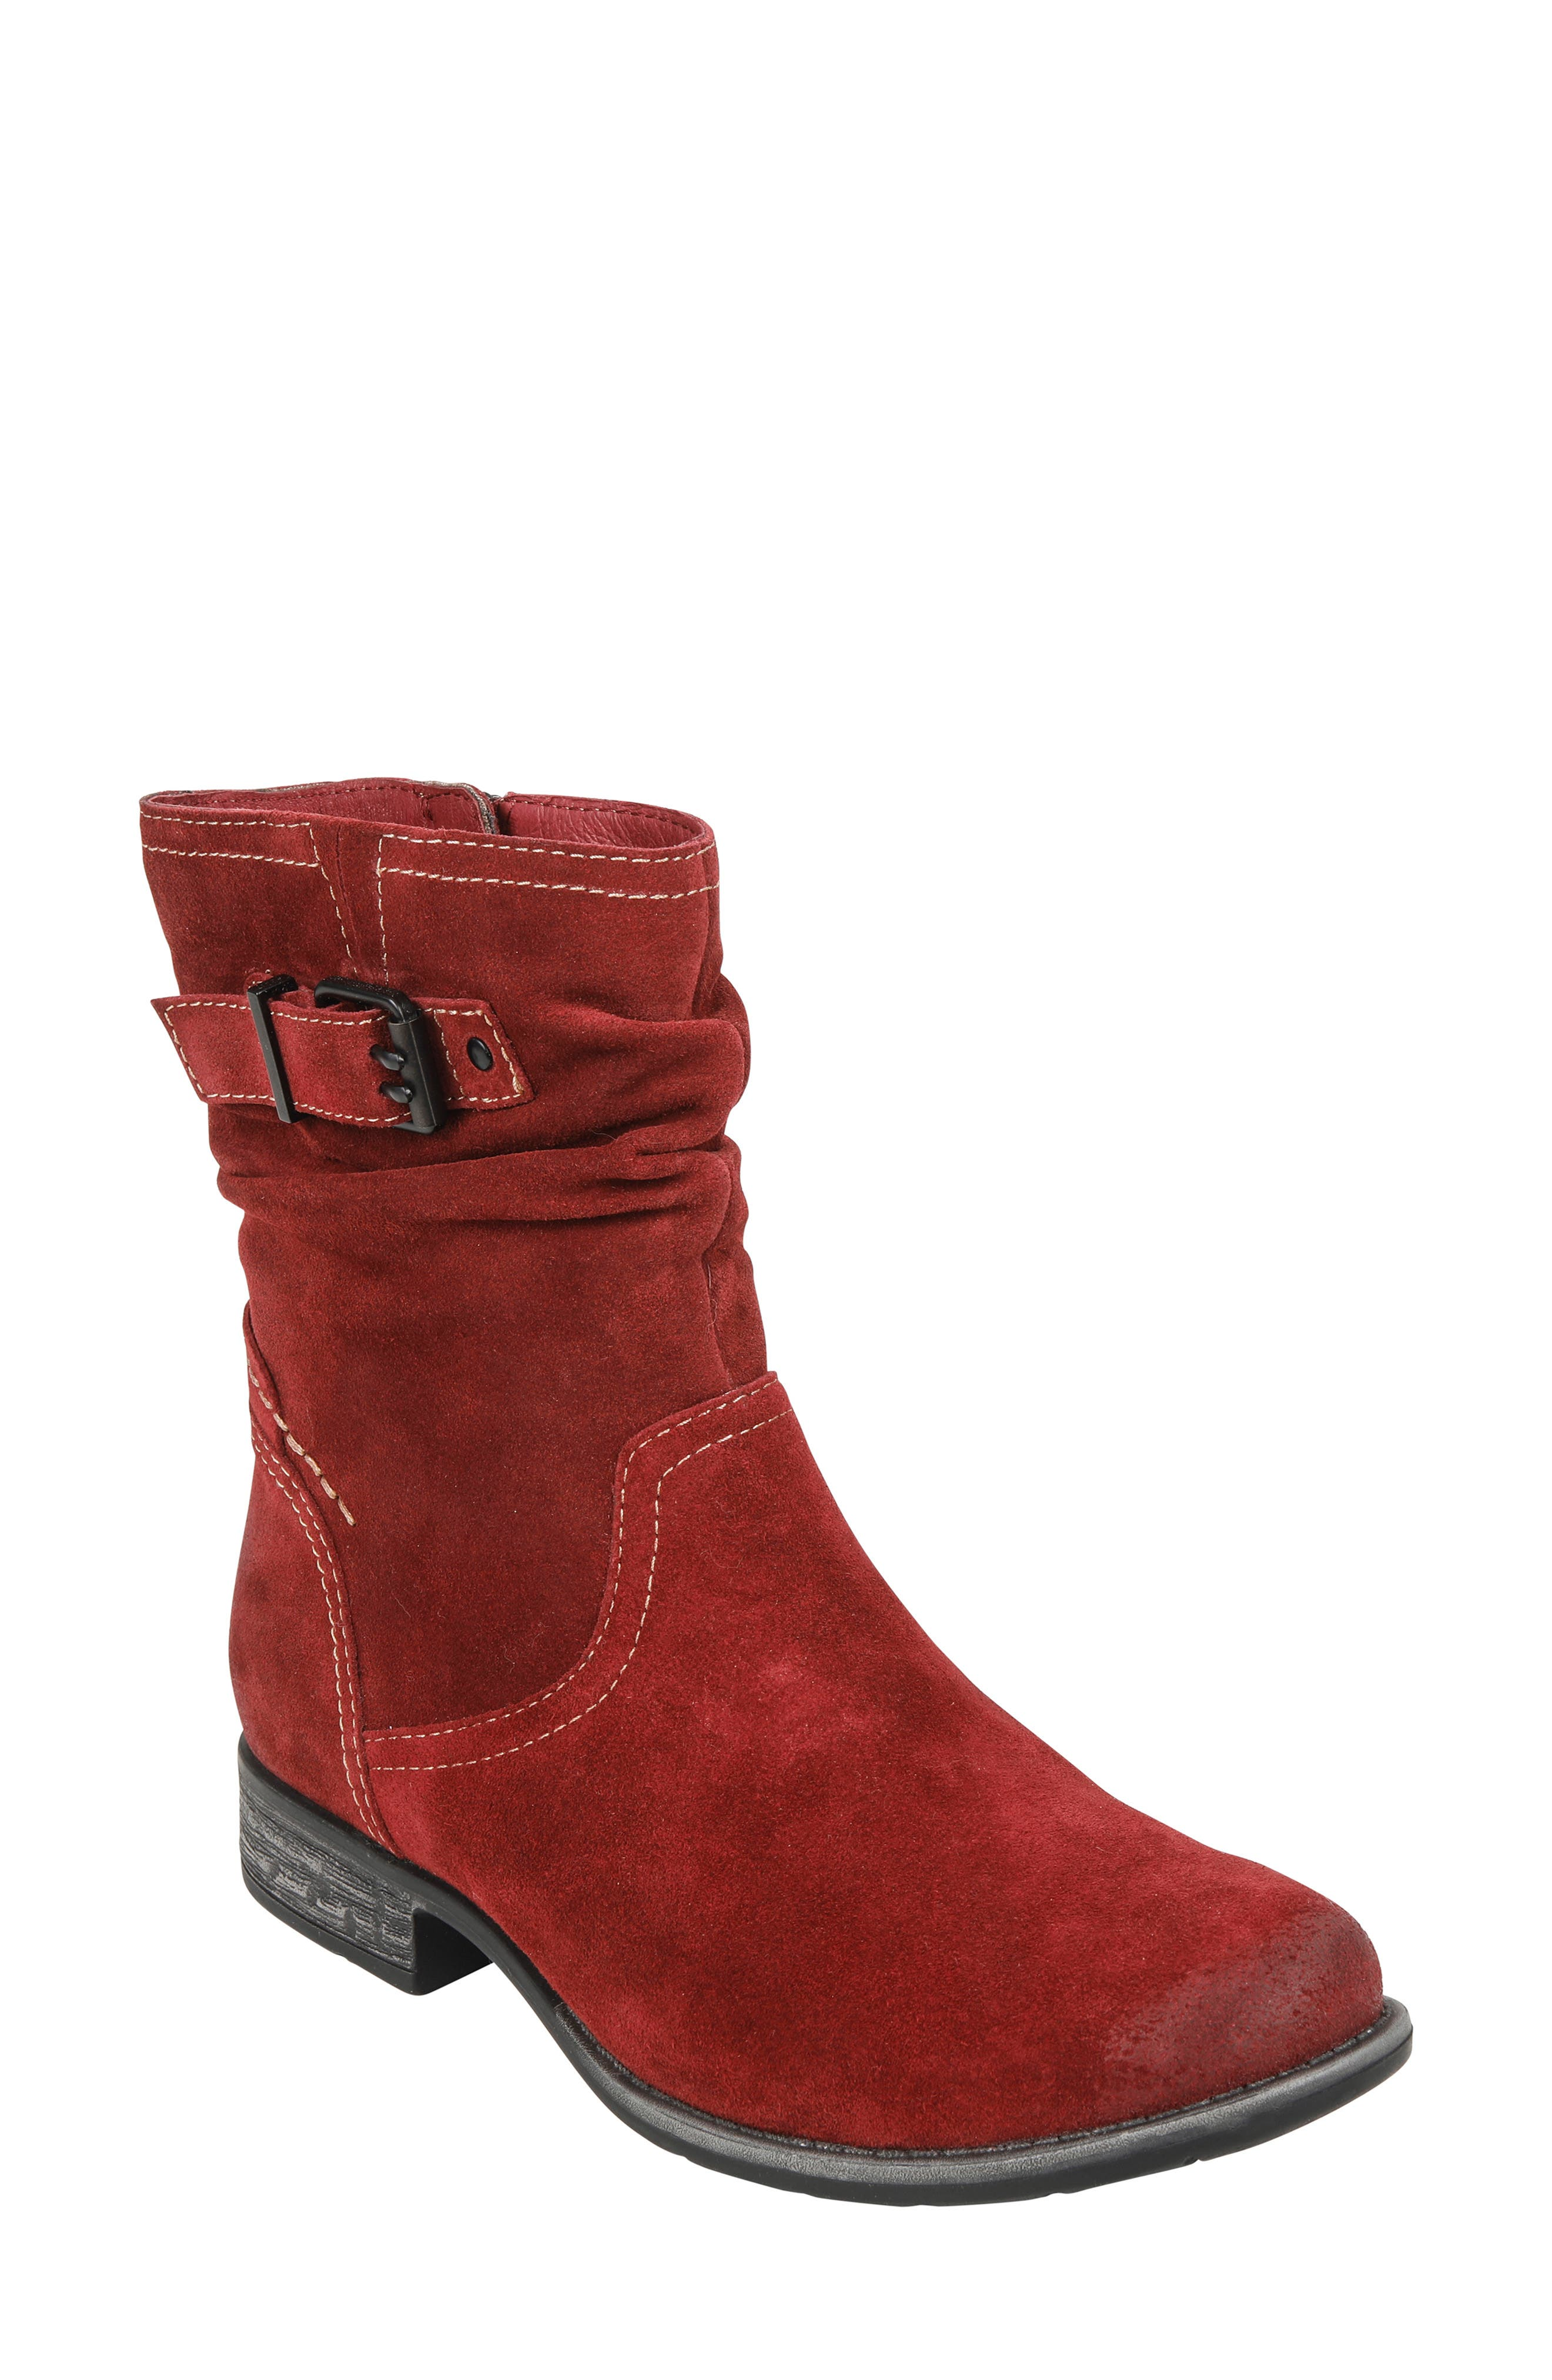 Beaufort Boot,                             Main thumbnail 1, color,                             GARNET SUEDE